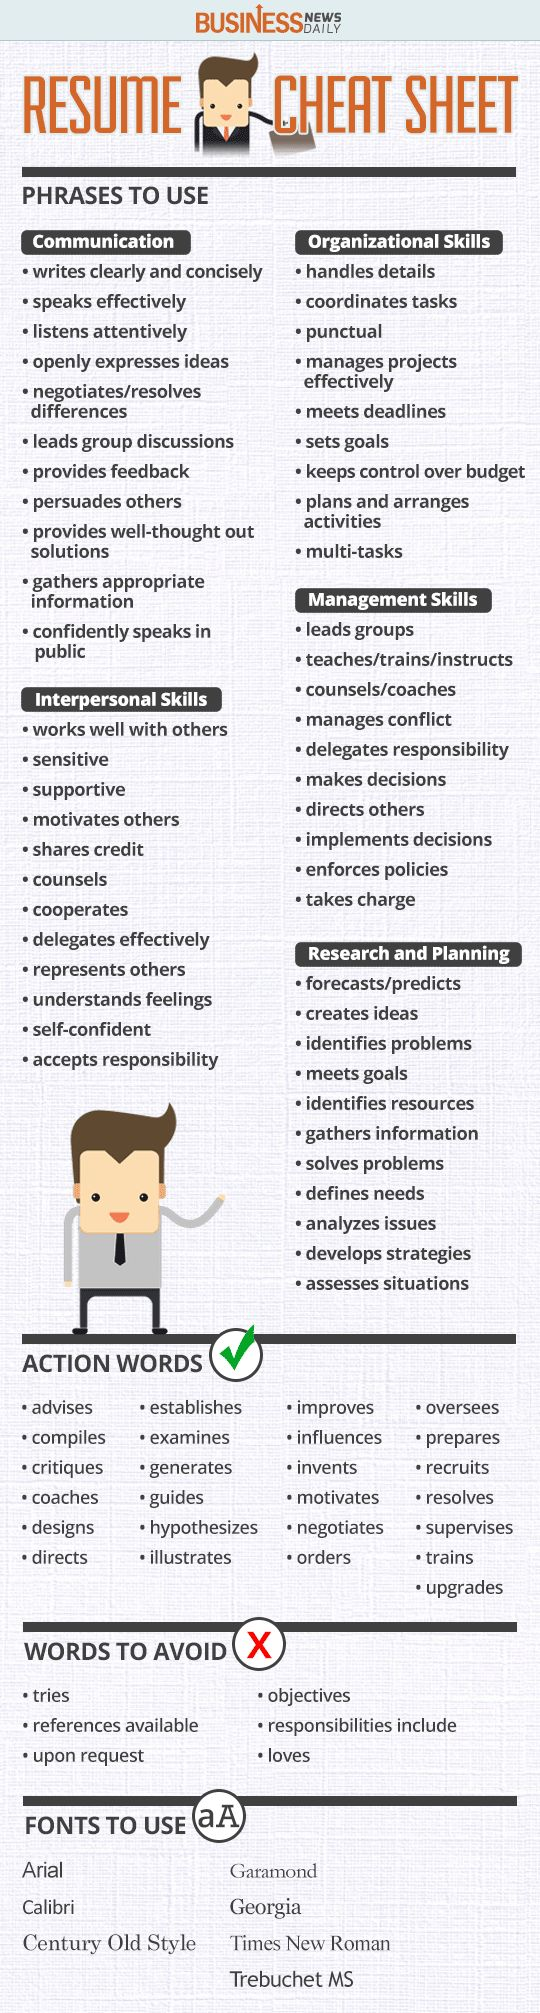 Opposenewapstandardsus  Outstanding  Ideas About Resume On Pinterest  Cv Format Resume Cv And  With Inspiring Resume Cheat Sheet Infographic Andrews Almost Done With A Complete Unit On Employment Which With Divine Computer Skills Resume Example Also Resume Summary Statements In Addition Finance Resume Examples And Football Coach Resume As Well As Cover Letter On Resume Additionally Best Resume Cover Letter From Pinterestcom With Opposenewapstandardsus  Inspiring  Ideas About Resume On Pinterest  Cv Format Resume Cv And  With Divine Resume Cheat Sheet Infographic Andrews Almost Done With A Complete Unit On Employment Which And Outstanding Computer Skills Resume Example Also Resume Summary Statements In Addition Finance Resume Examples From Pinterestcom